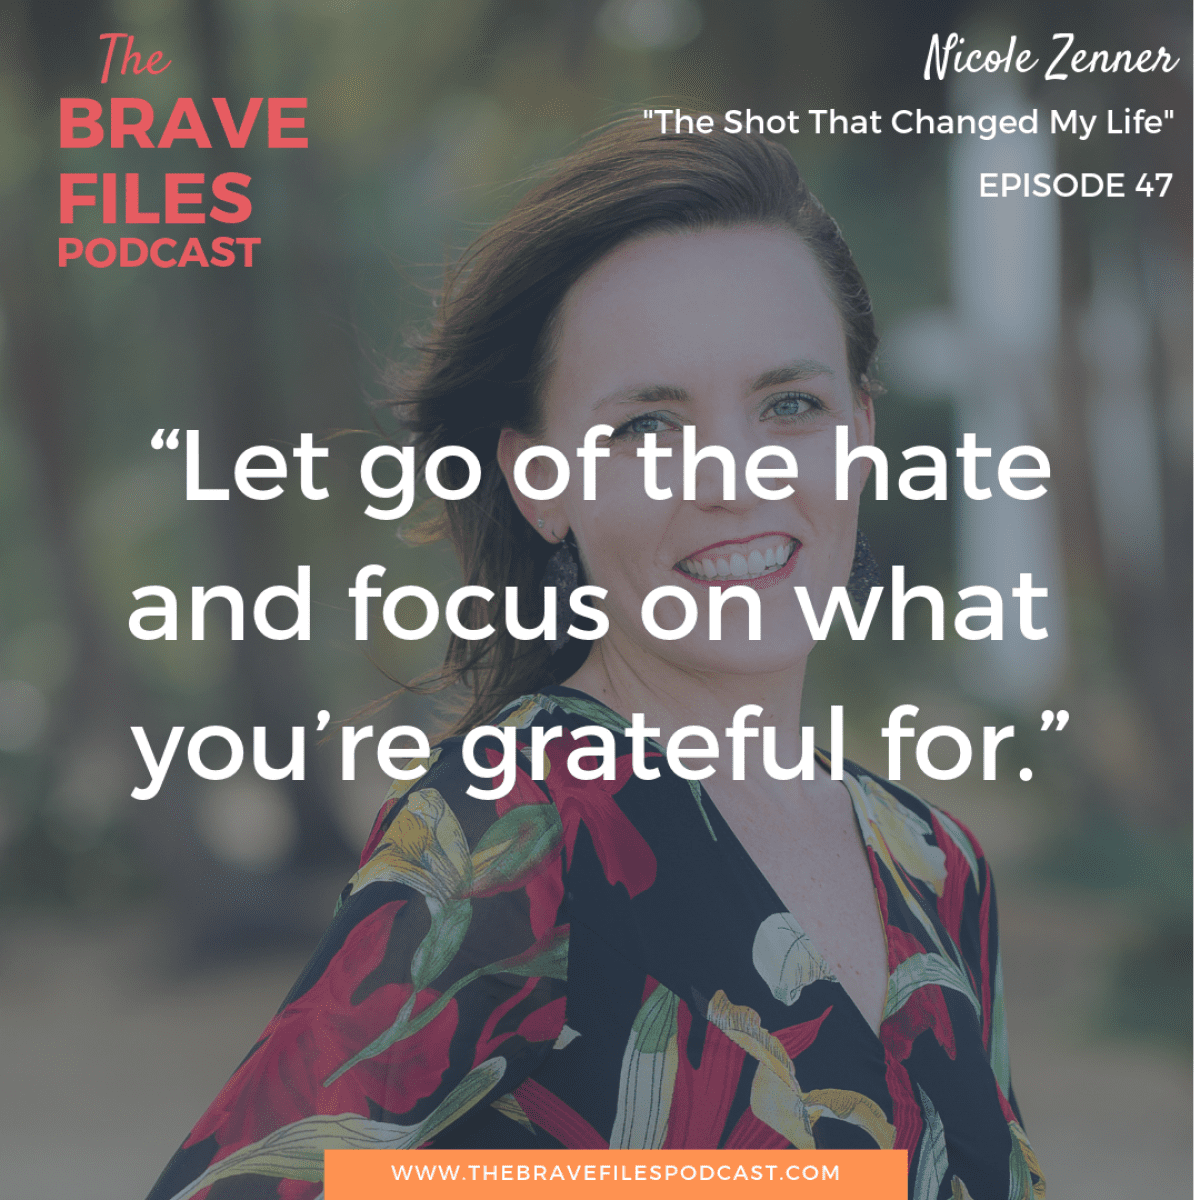 Nicole Zenner went from being a victim to an activist. After a terrifying and life threatening experience, she chose love and restorative justice. Hear her story on The Brave Files Podcast